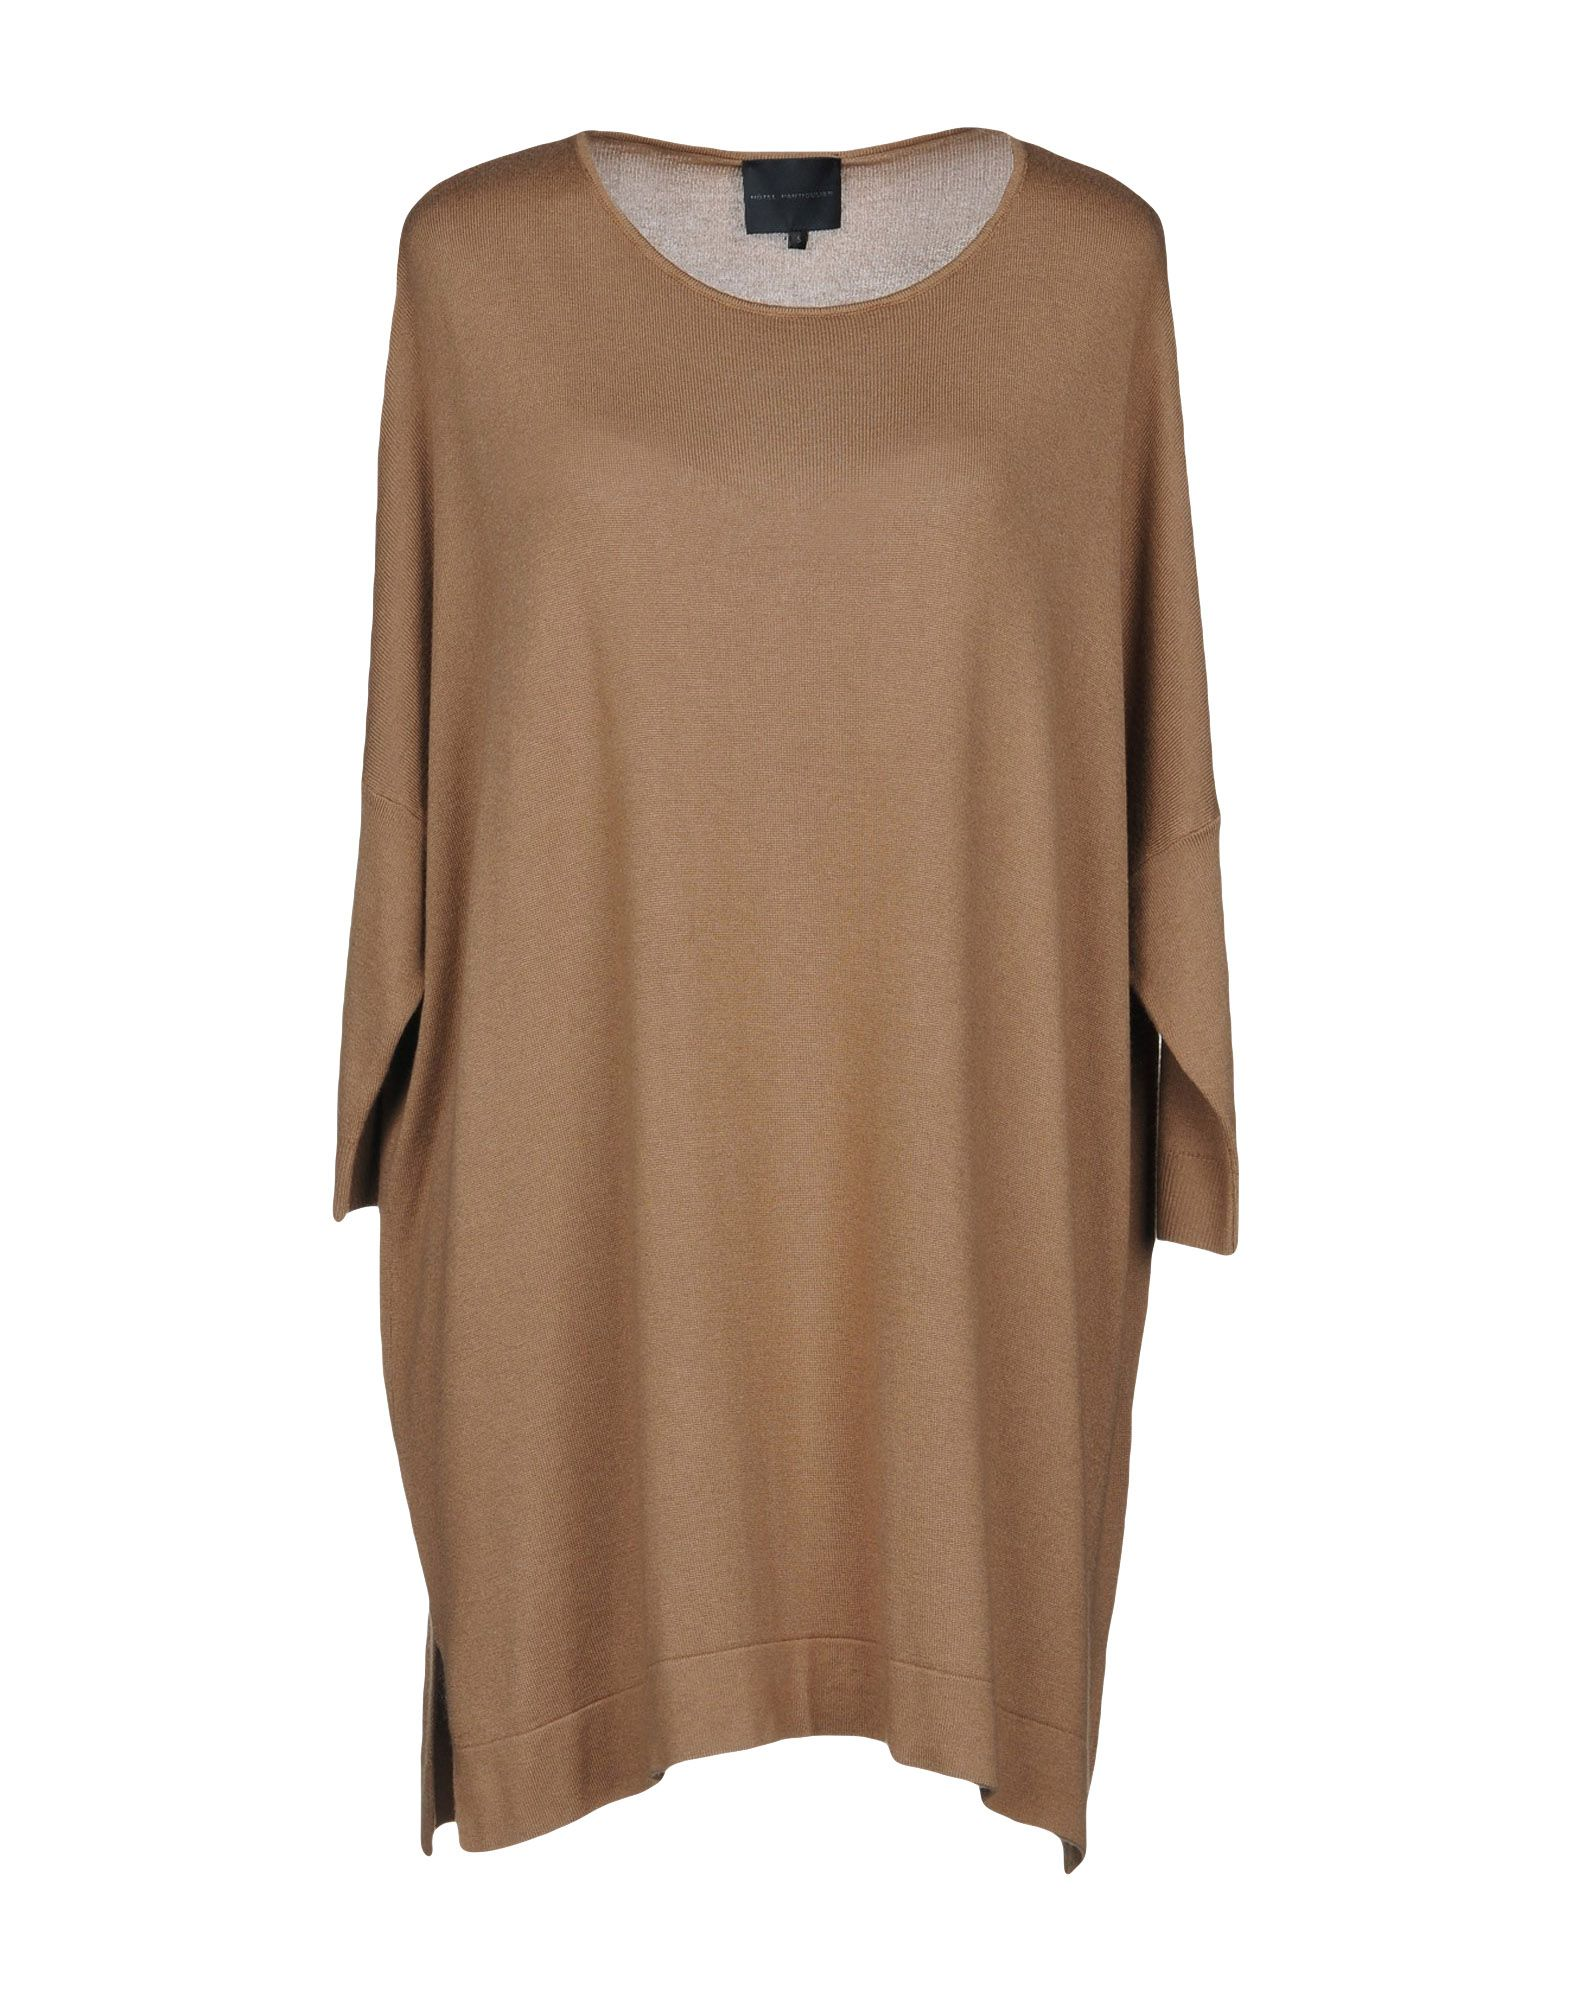 HOTEL PARTICULIER Sweater in Camel